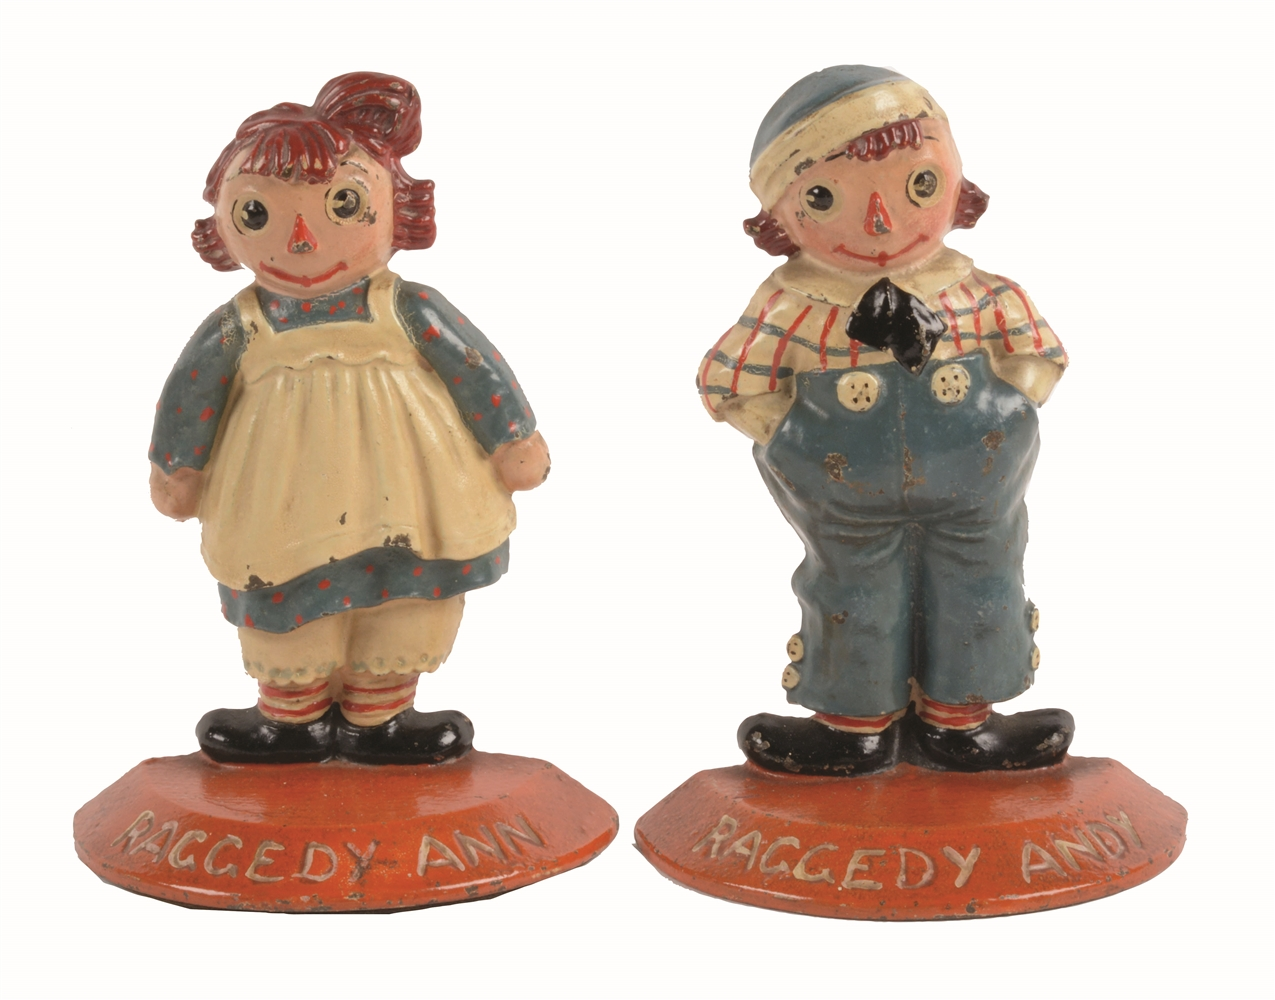 RAGGEDY ANN & ANDY BOOKENDS.